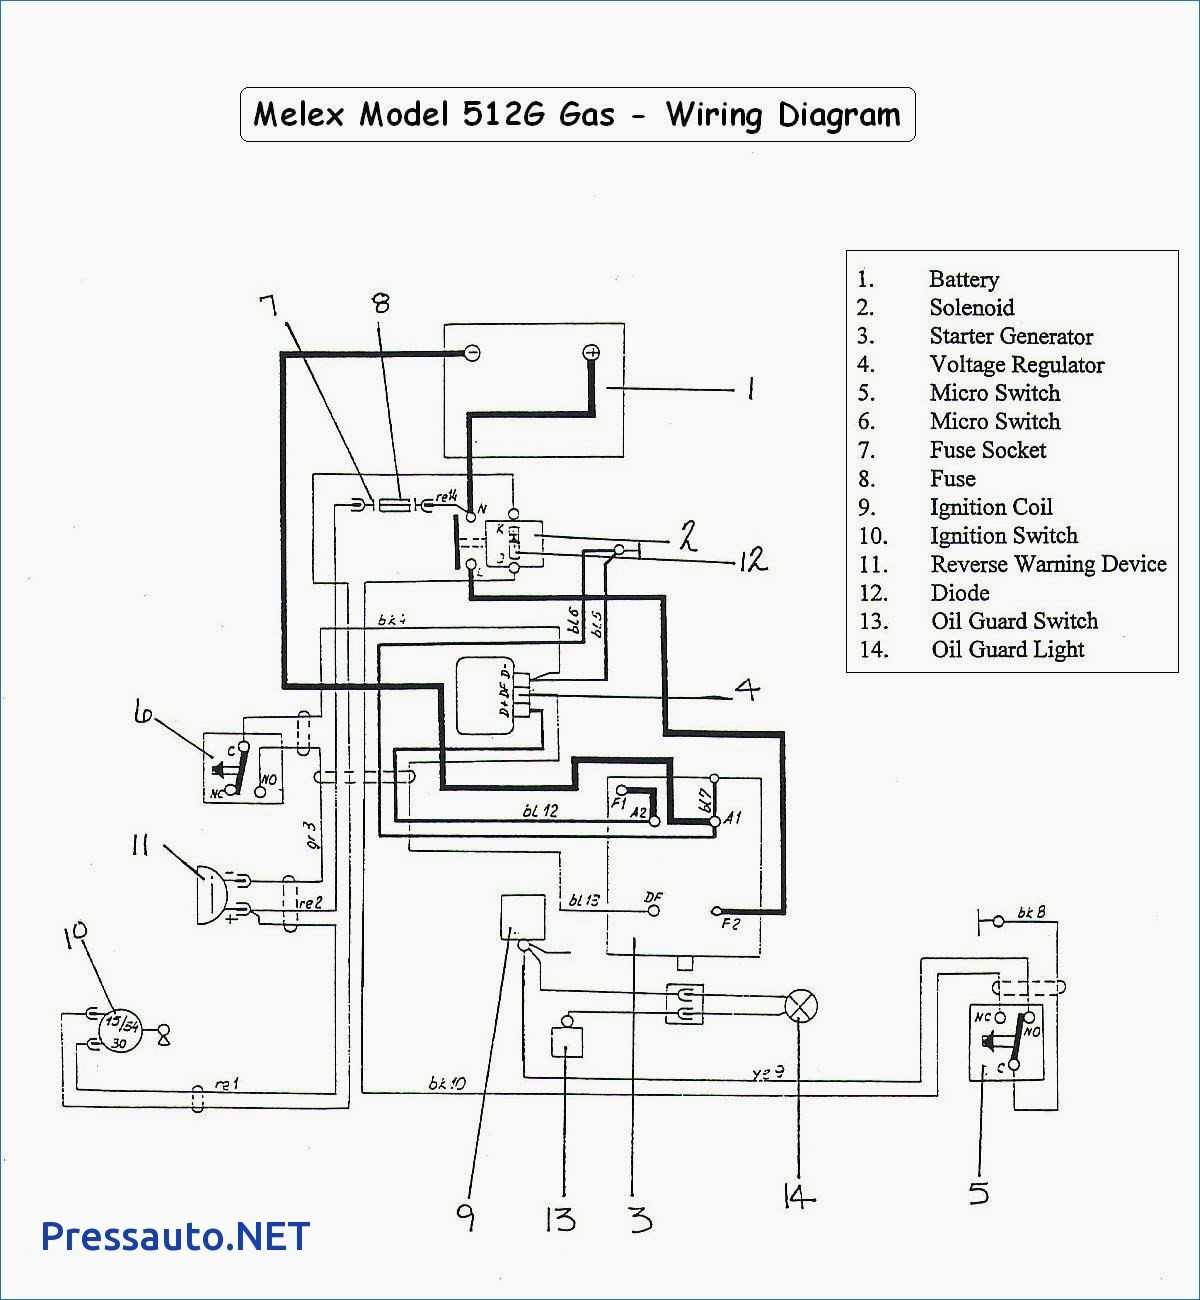 Yamaha G9 Golf Cart Wiring Diagram - Wiring Diagram Schemas